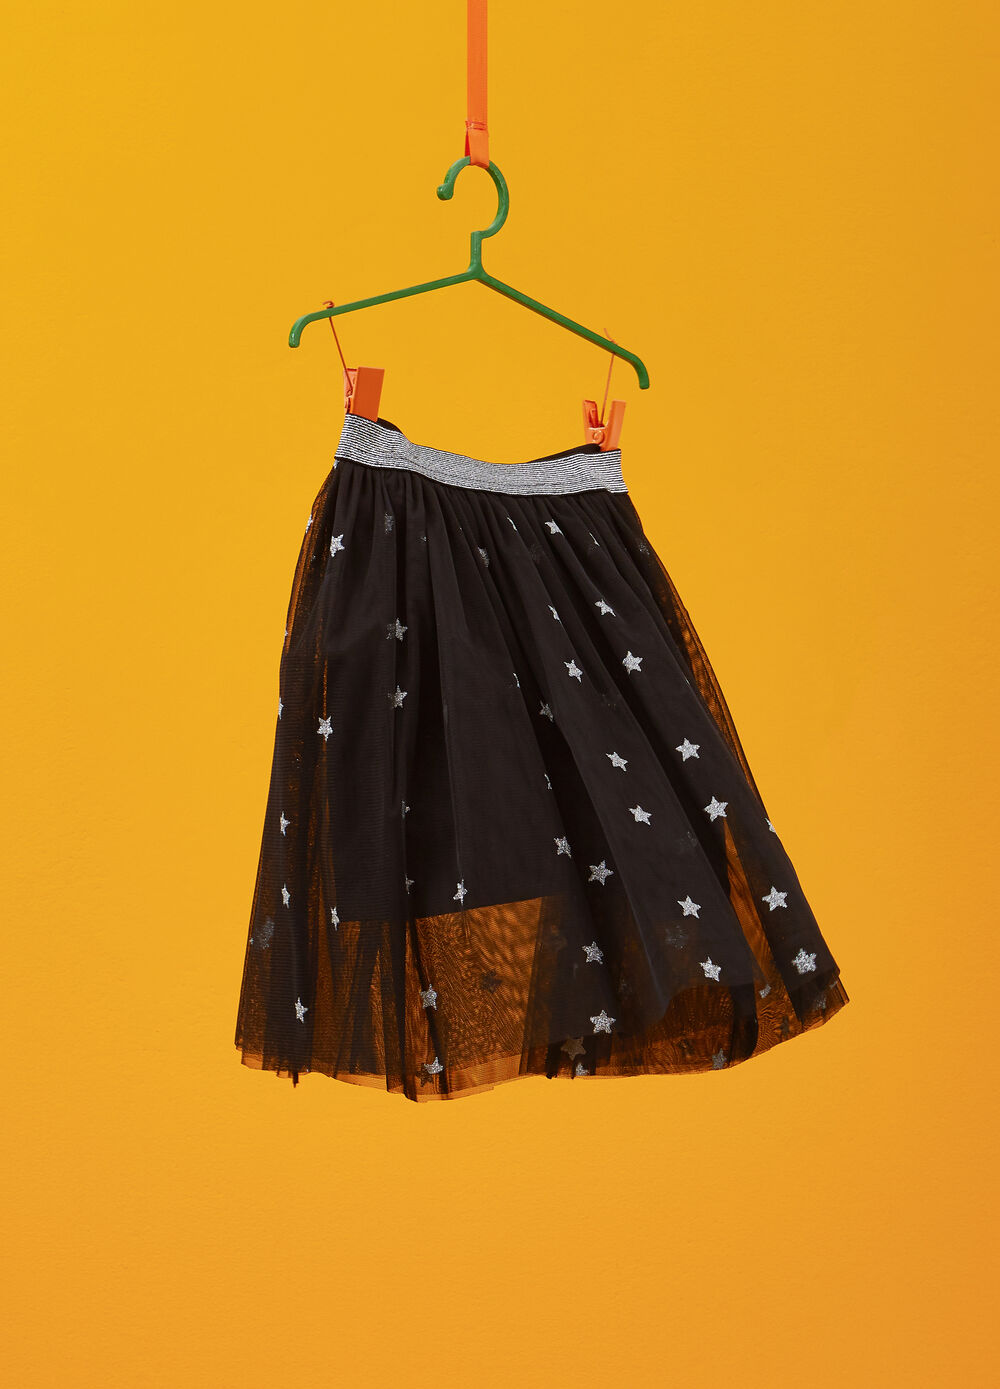 Tulle skirt with glitter star pattern